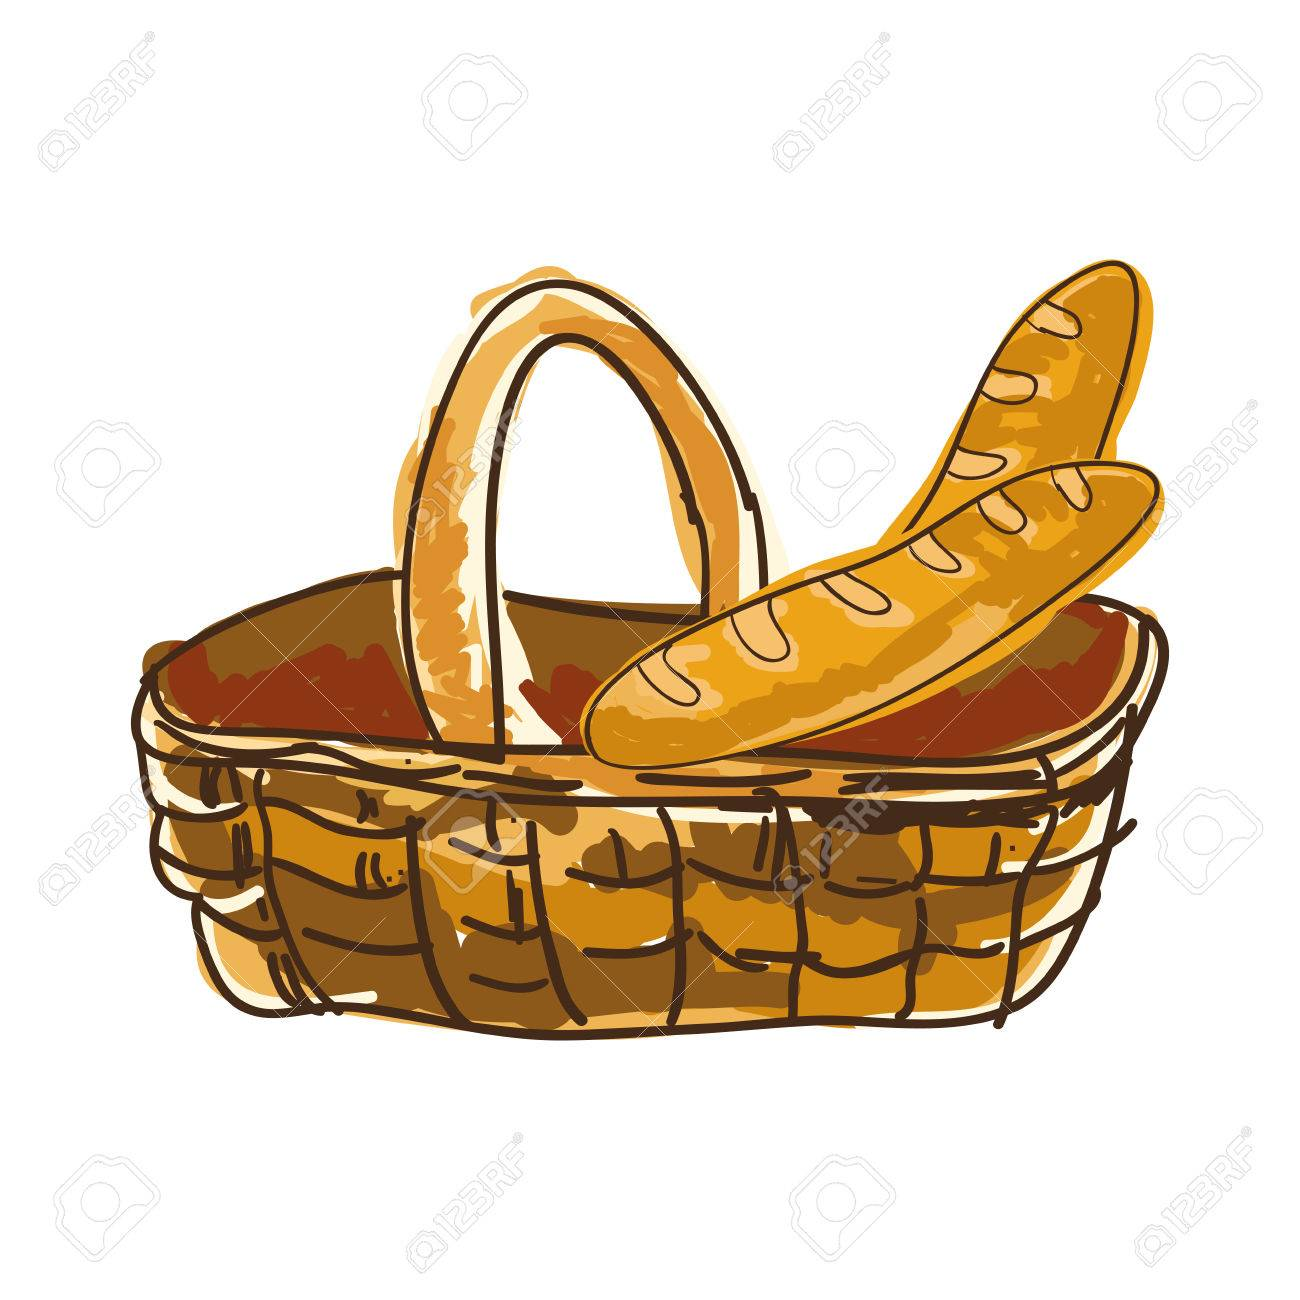 1300x1300 Basket With French Baguette Bread Bakery Food Product. Drawn